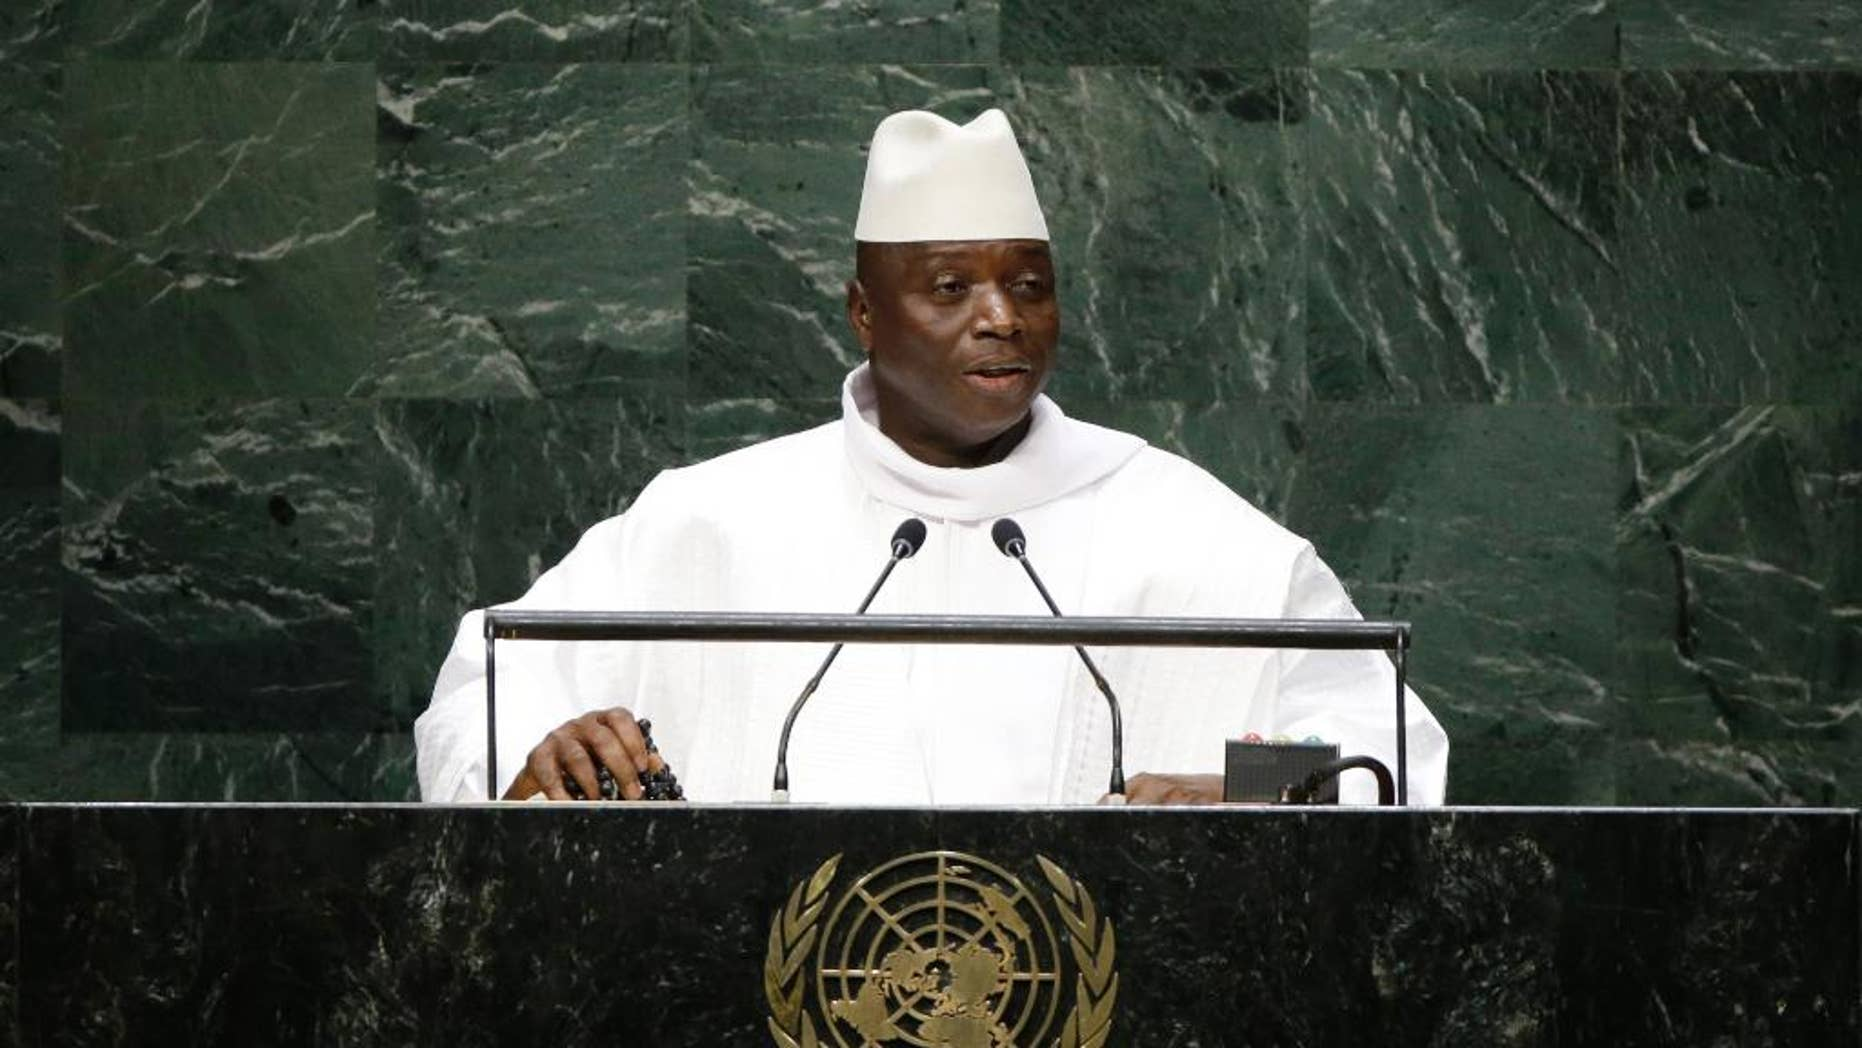 Gambia's President Al Hadji Yahya Jammeh addresses the 69th session of the United Nations General Assembly Thursday, Sept. 25, 2014, at the United Nations headquarters. (AP Photo/Frank Franklin II)